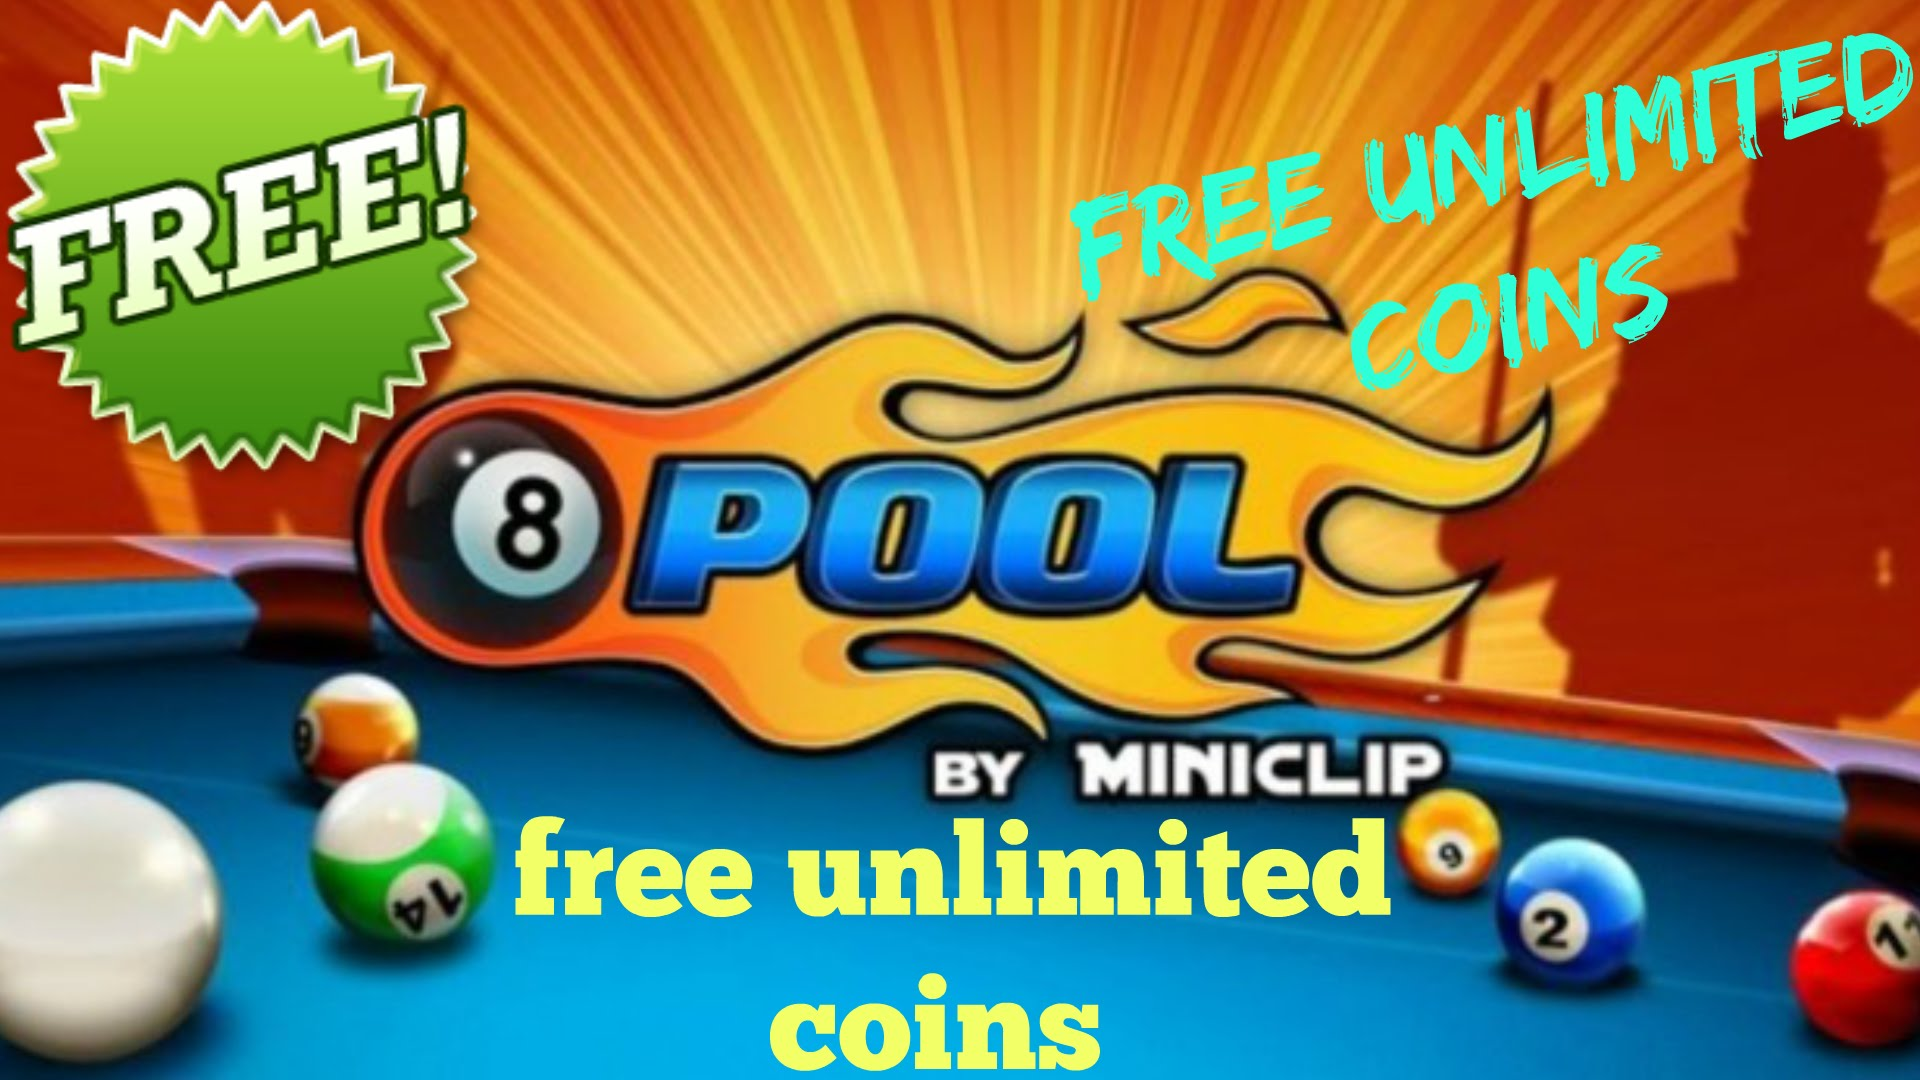 【DOWNLOADHACKEDGAMES.COM 8 BALL POOL】 Cash and Coins FOR ANDROID IOS PC PLAYSTATION | 100% WORKING METHOD | GET UNLIMITED RESOURCES NOW